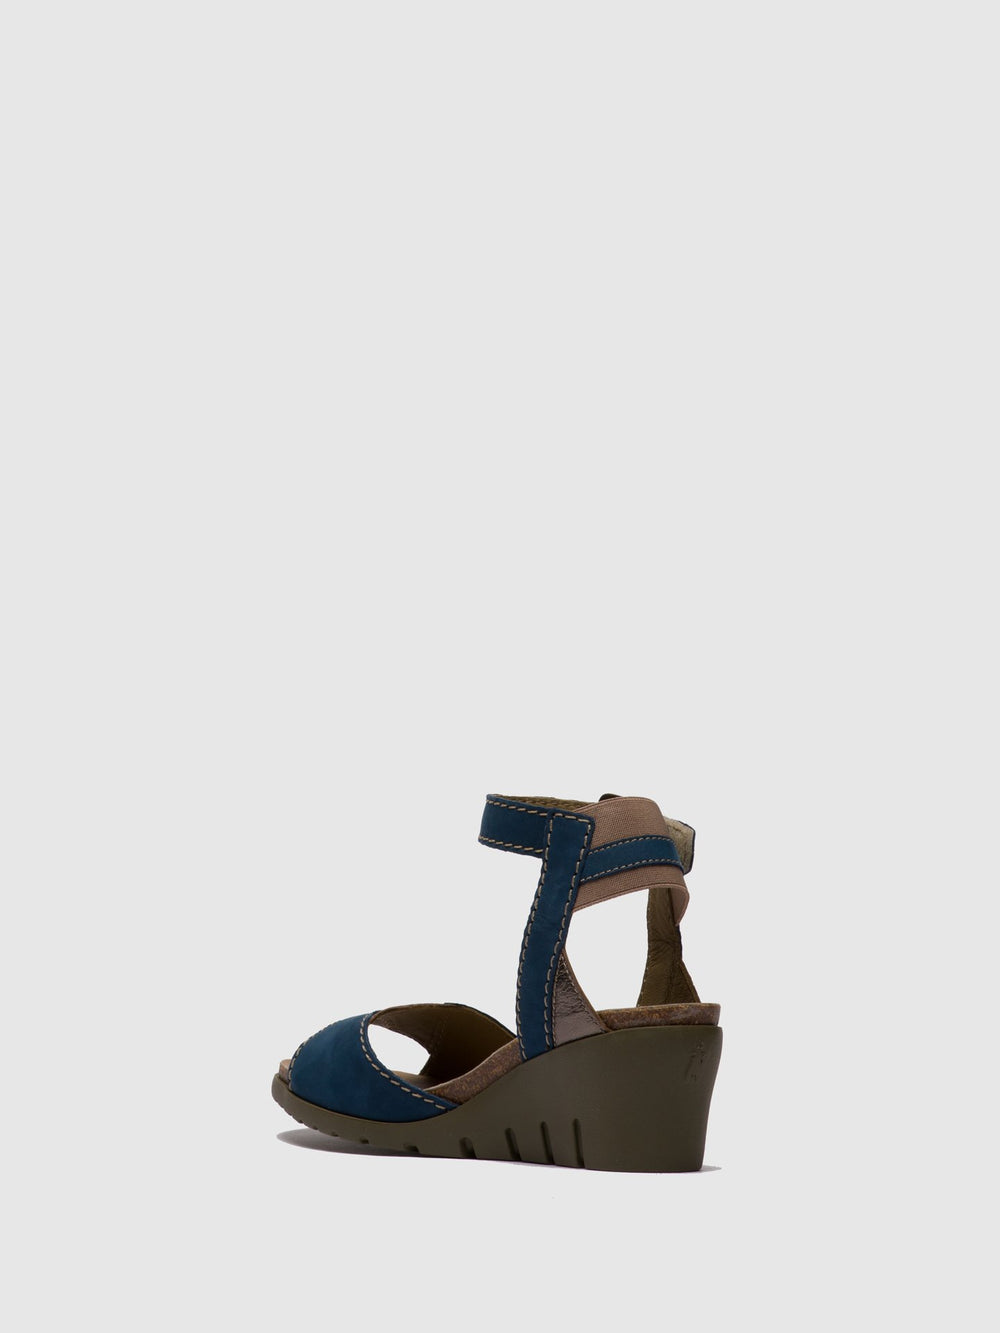 Ankle Strap Sandals IMAT455FLY BLUE/BRONZE